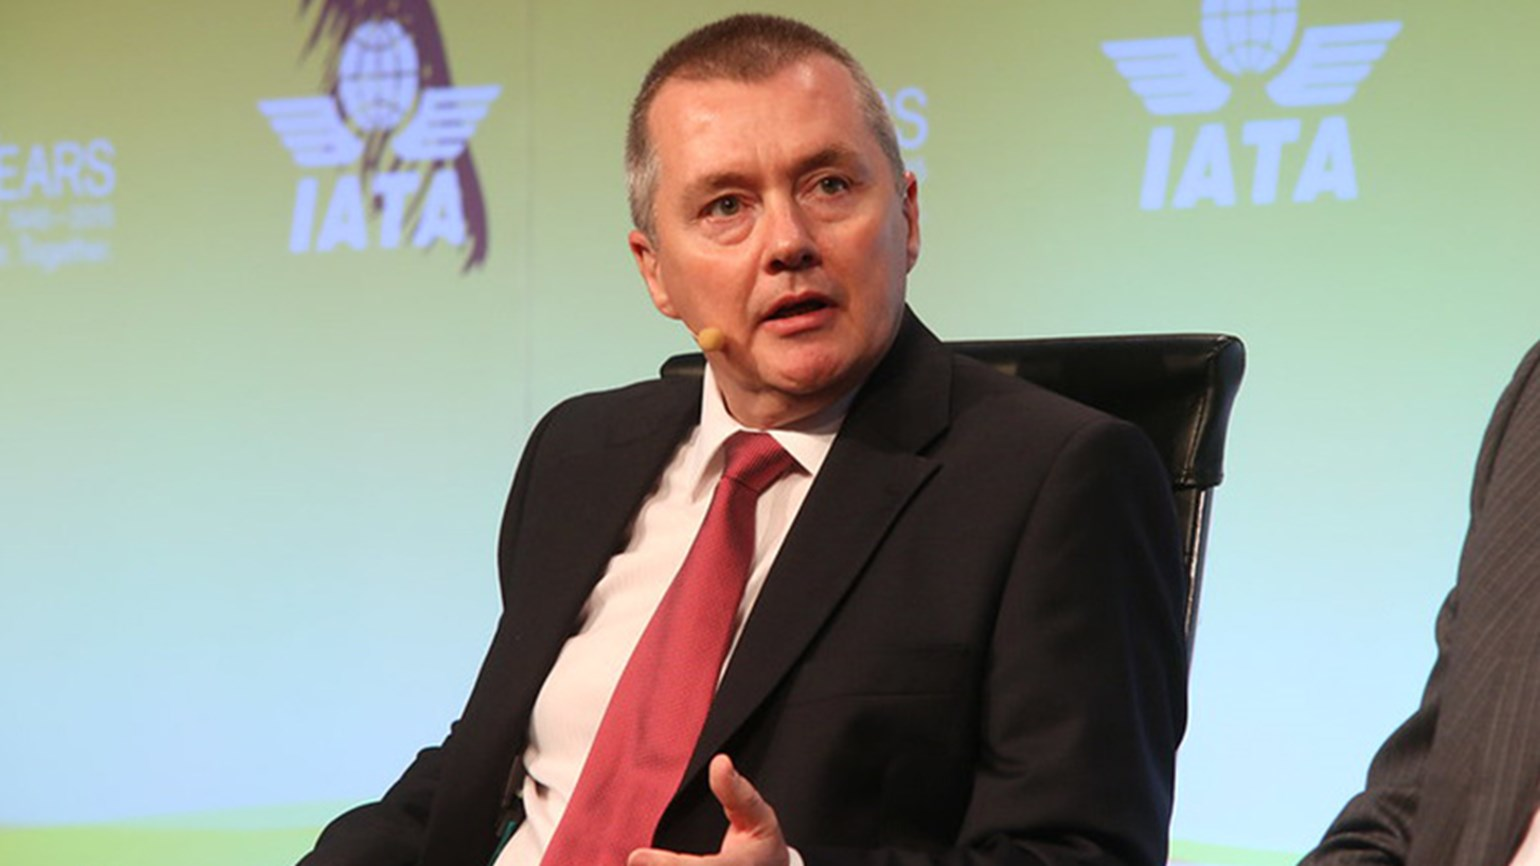 Former IAG CEO Willie Walsh to become IATA head